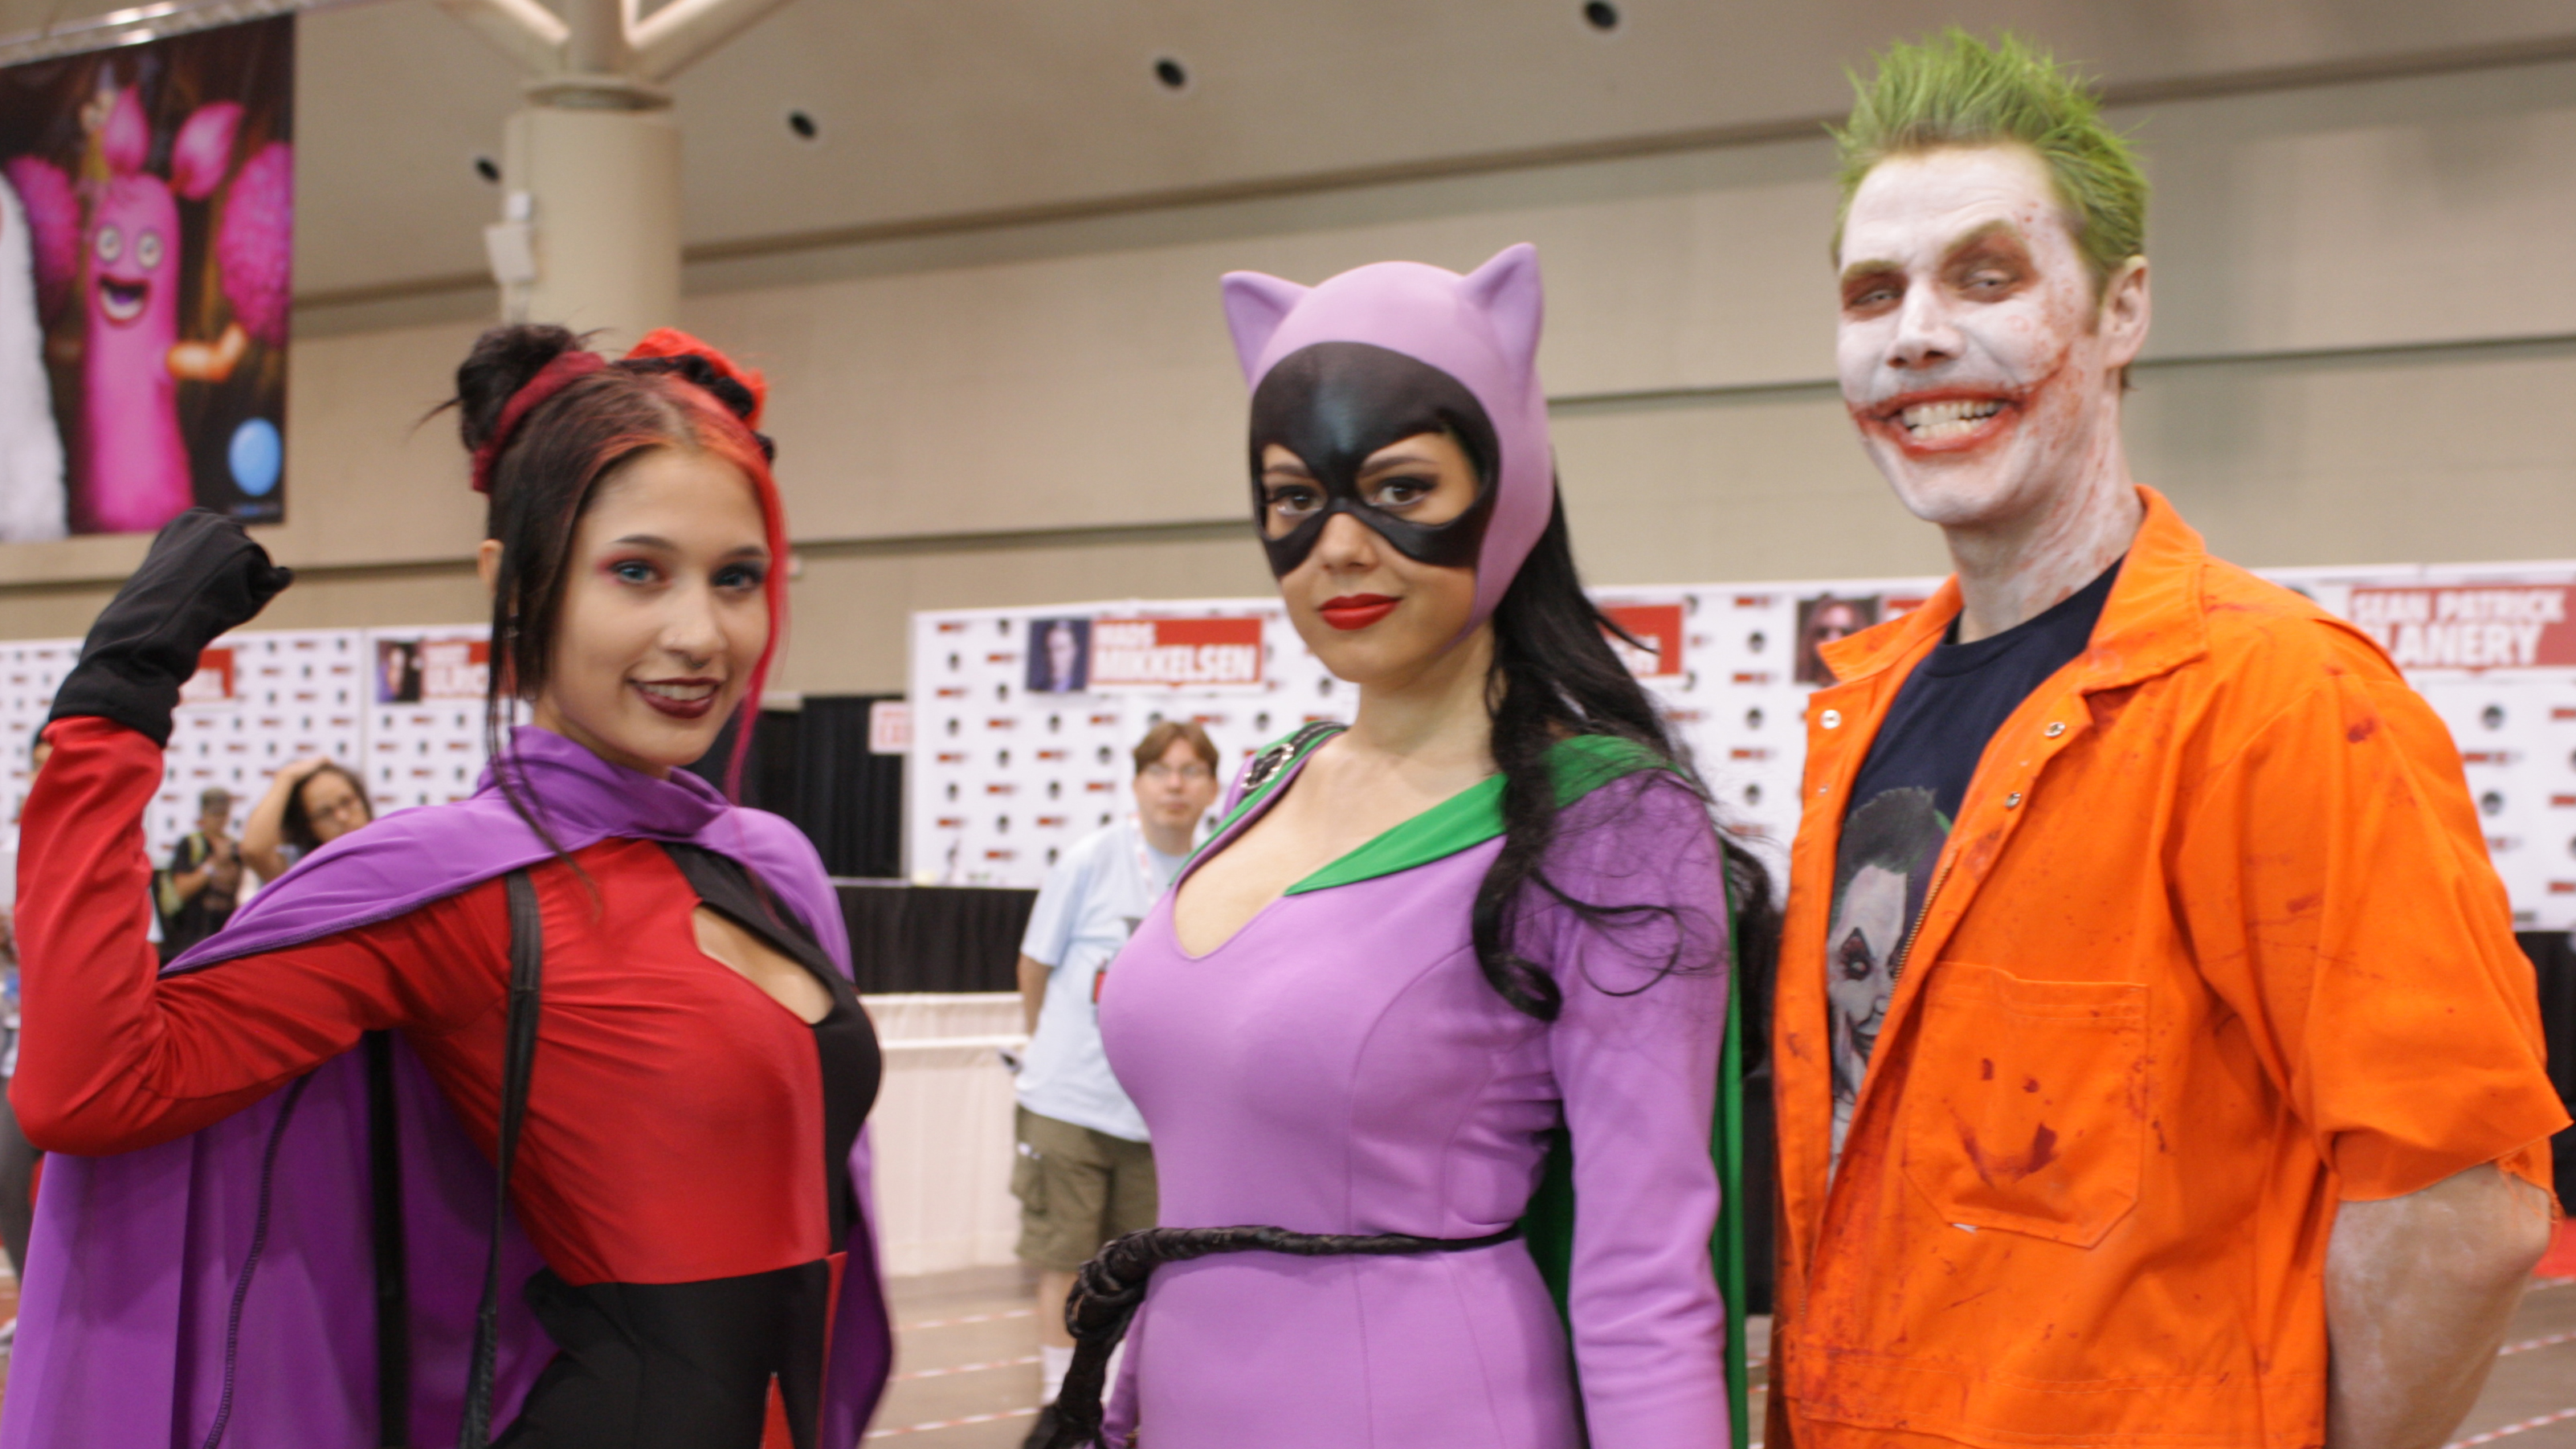 Three cosplayers at Fan Expo on Sept. 4, 2015. CITYNEWS/Christine Chubb